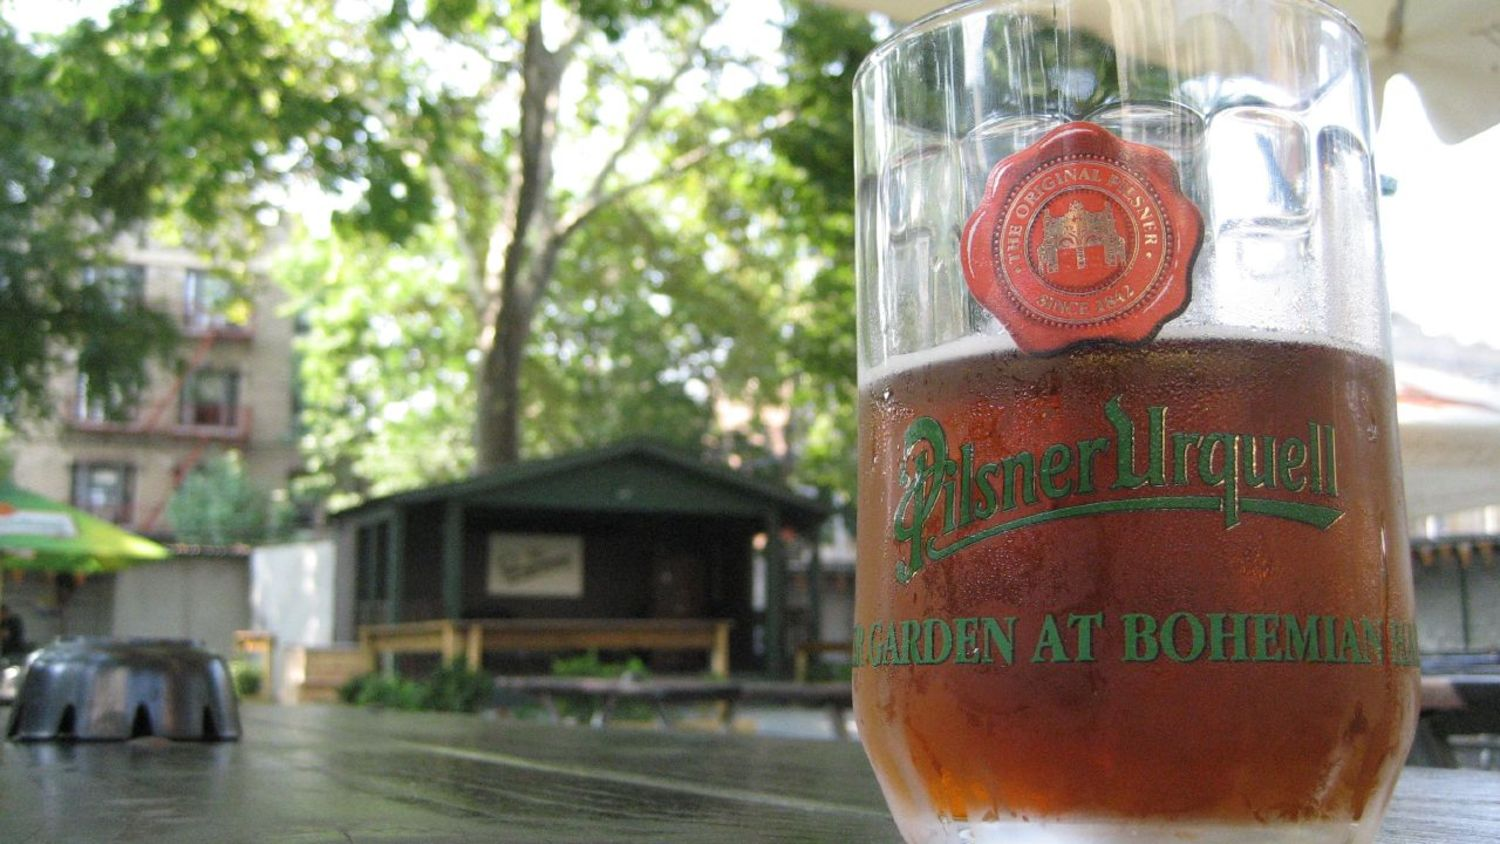 The Beer Garden at Bohemian Hall in Astoria, Queens